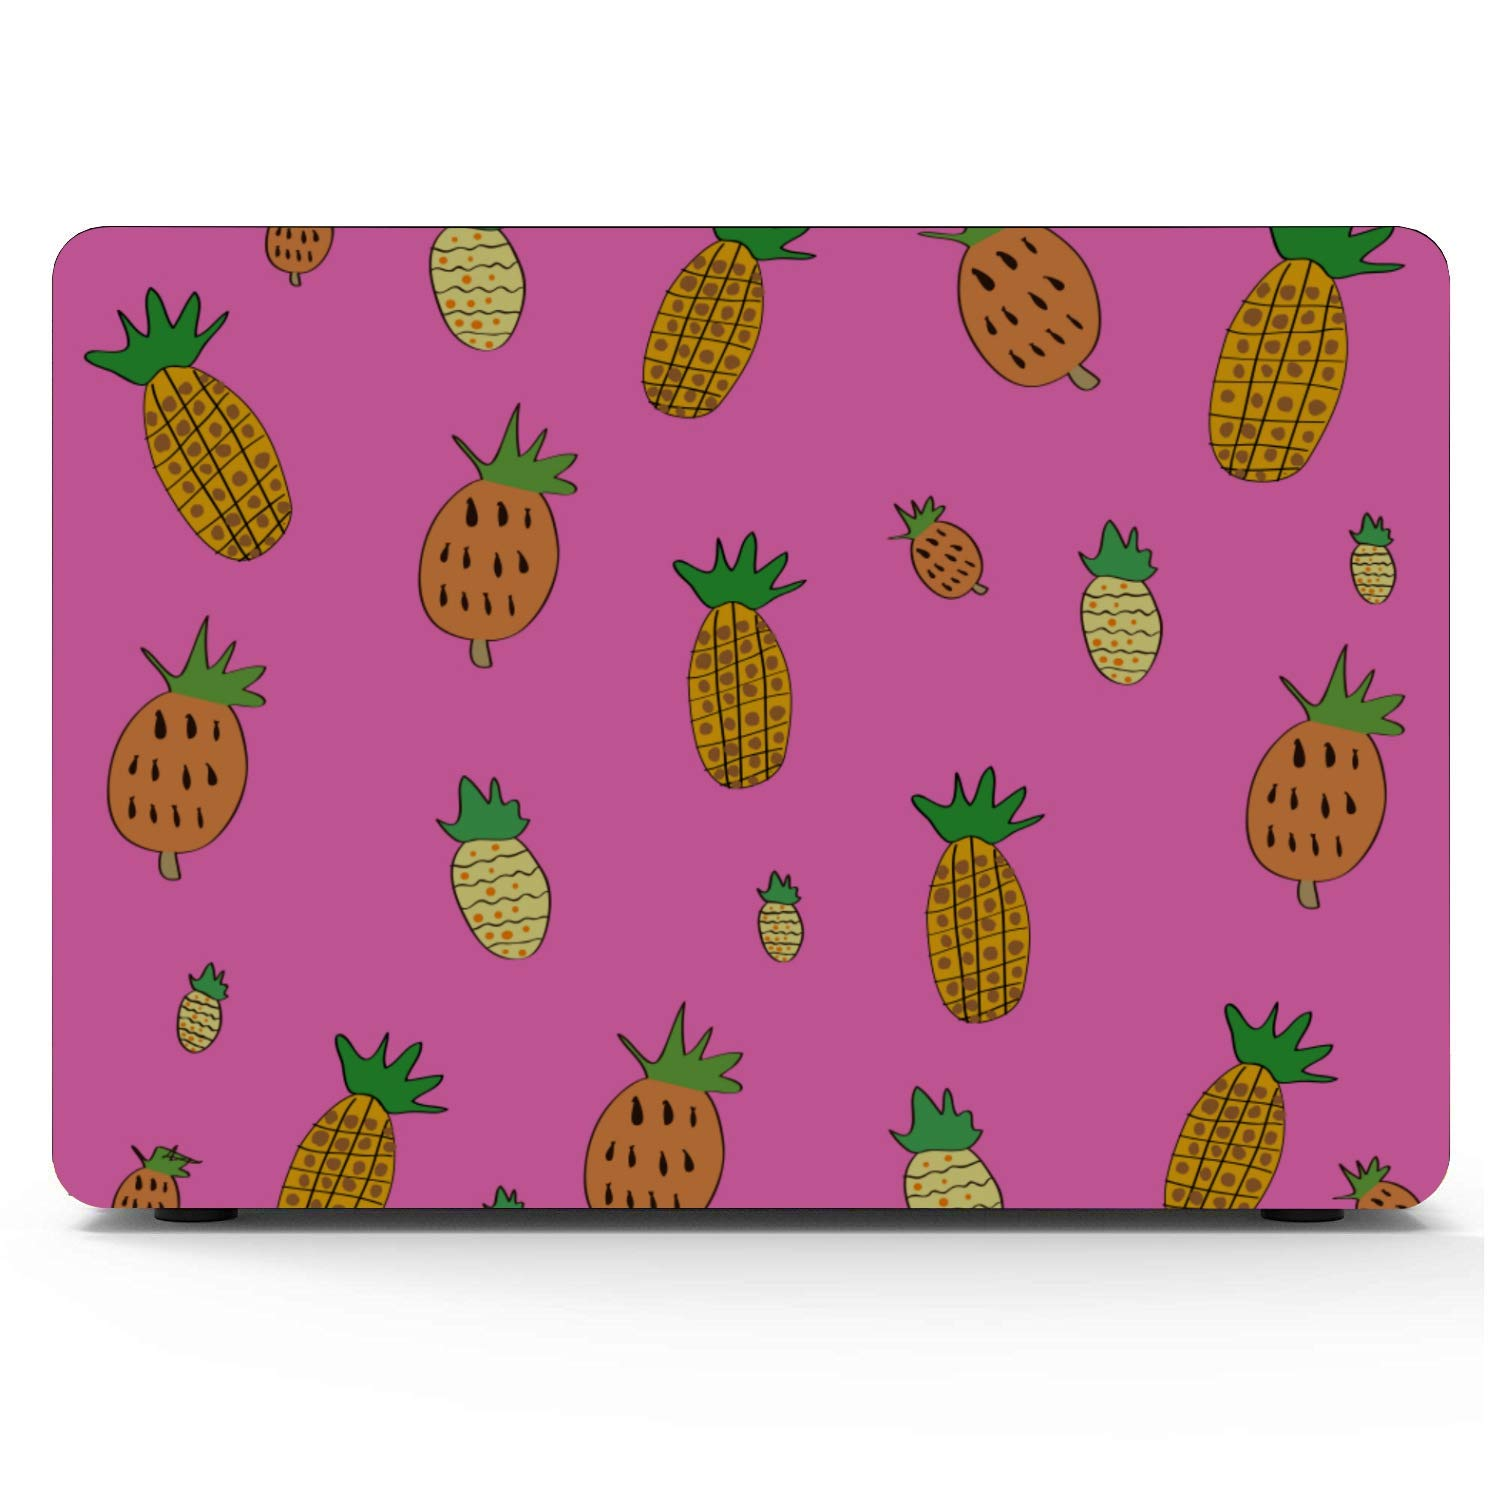 MacBook Pro Screen Protector Summer Romantic Fruit Cute Pineapple Plastic Hard Shell Compatible Mac Air 11 Pro 13 15 Laptop Cover Case Protection for MacBook 2016-2019 Version